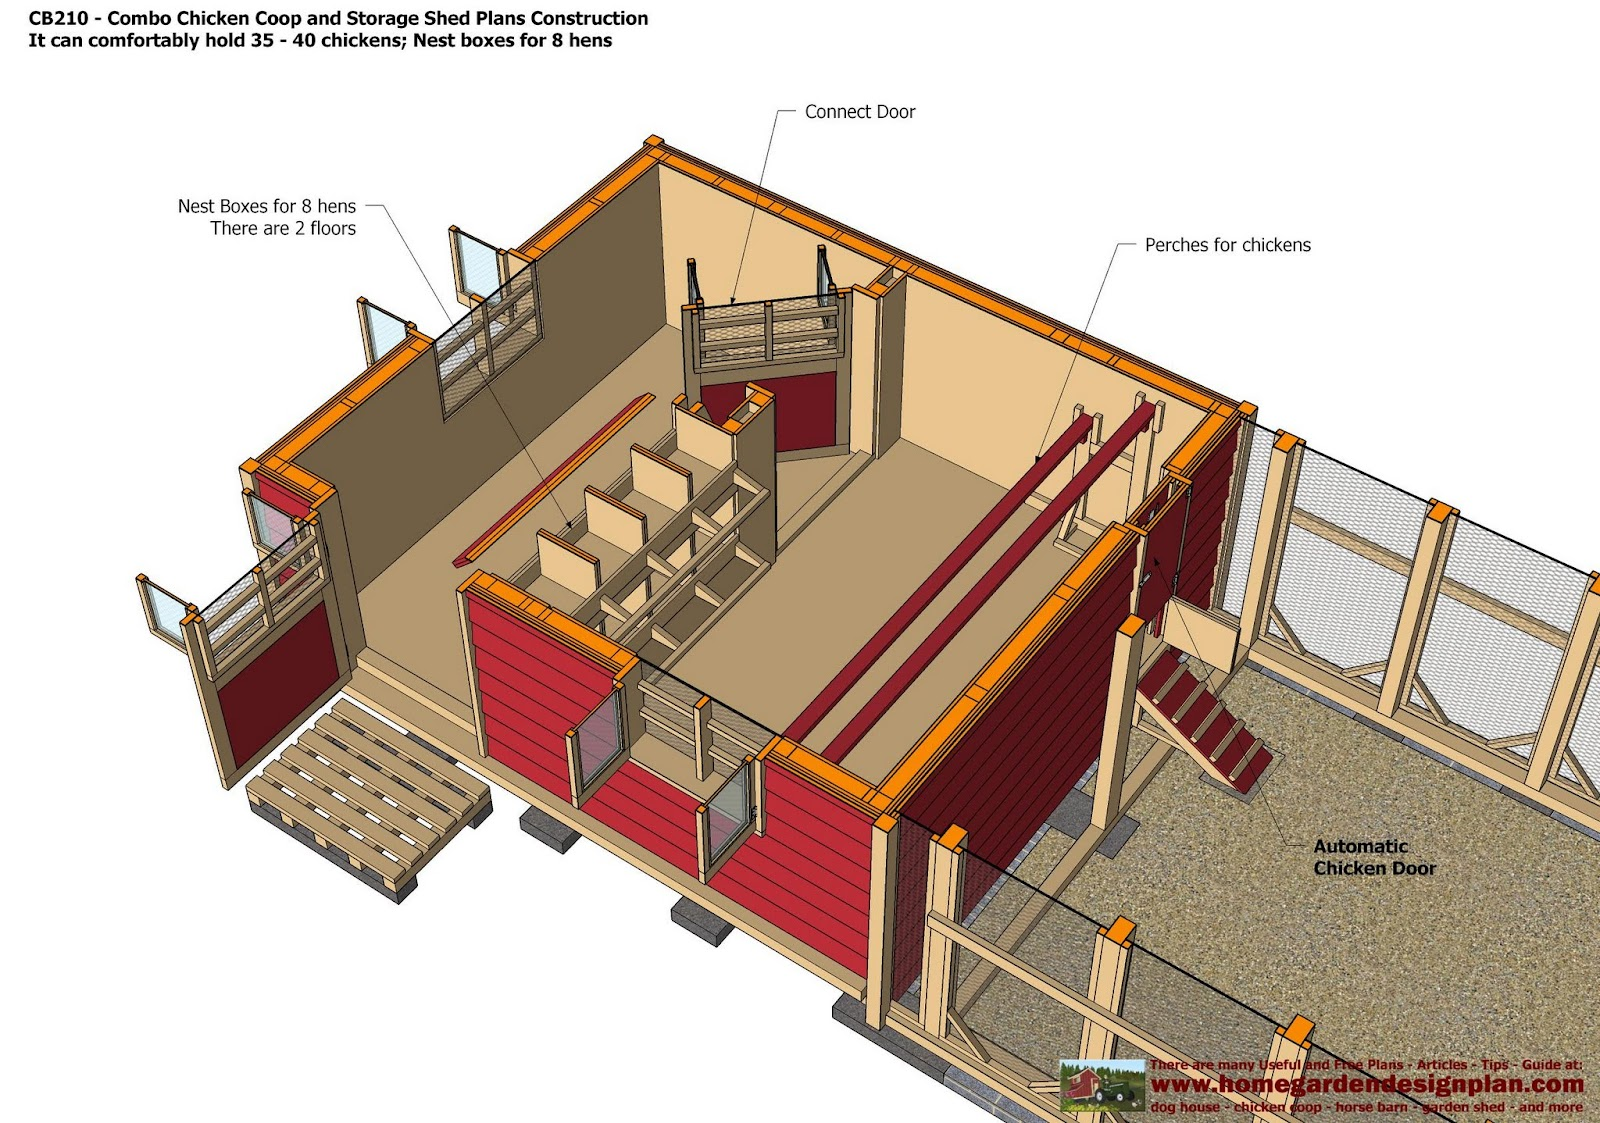 Home garden plans cb210 combo plans chicken coop for Shed design plans